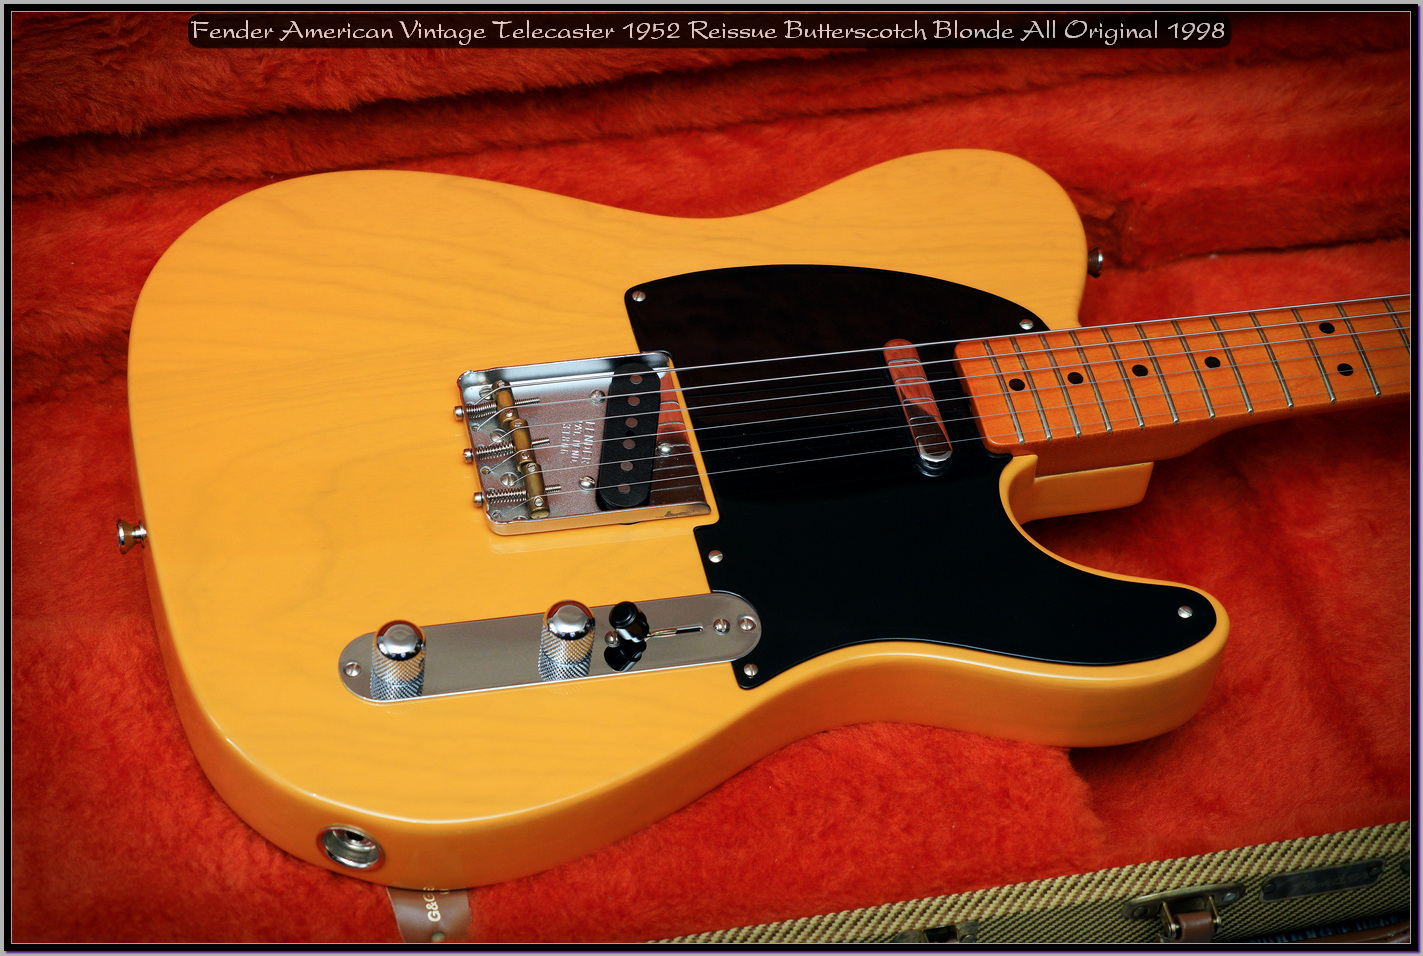 Fender American Vintage Telecaster 1952 Reissue Butterscotch Blonde All Original 1998 16_x1440.jpg